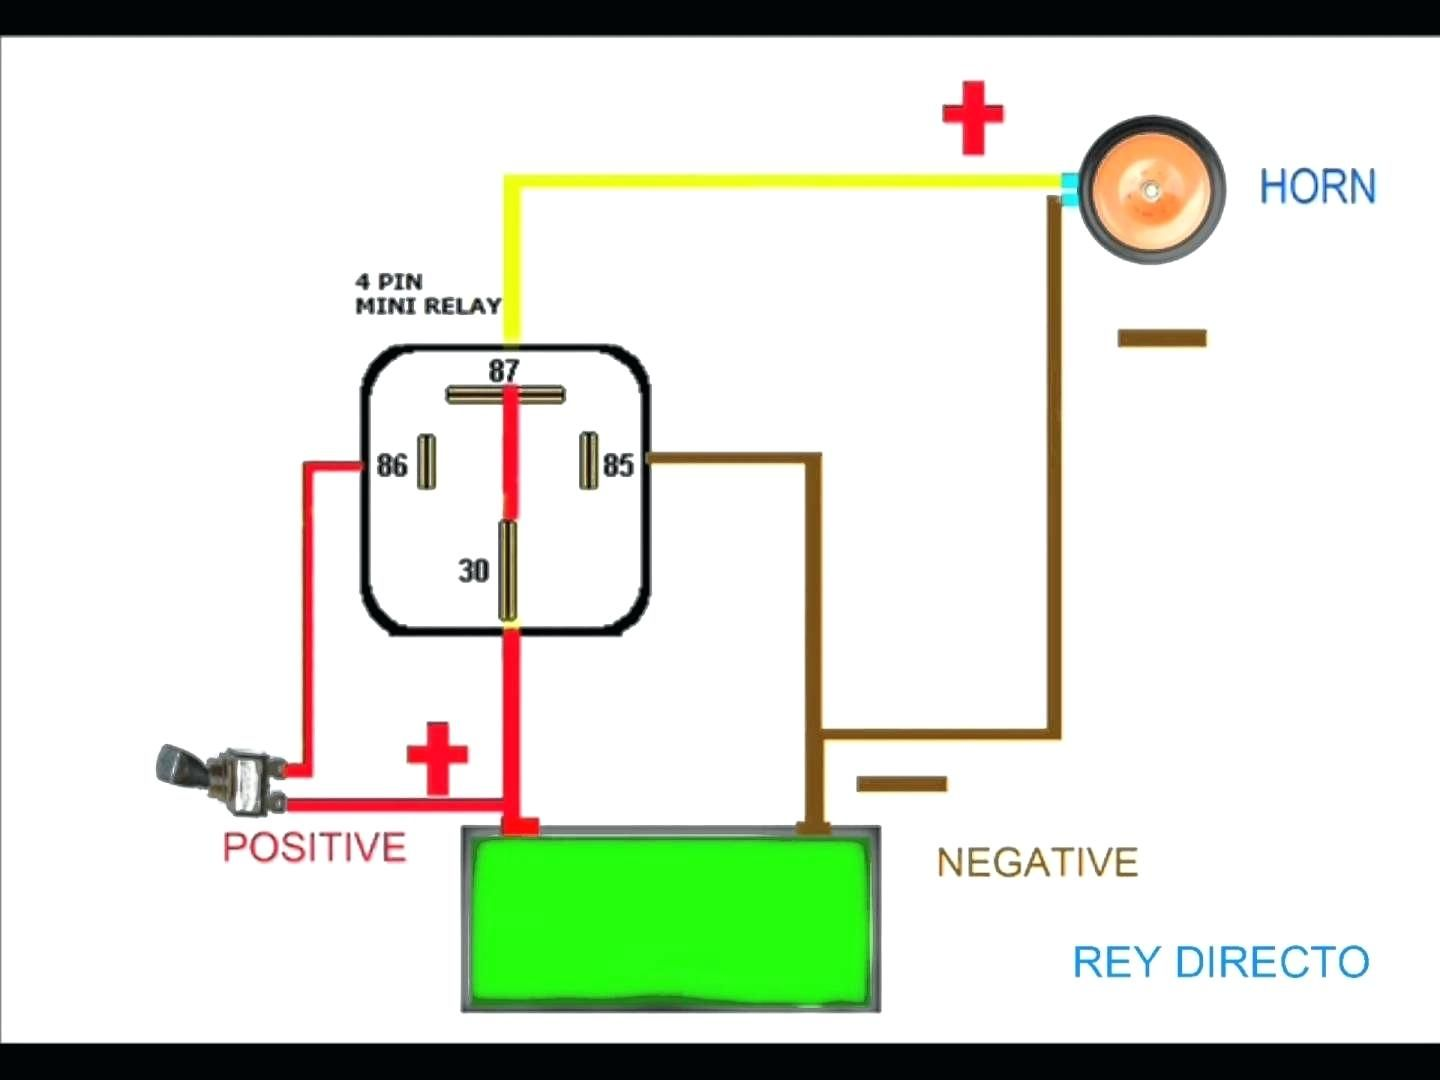 12v 5 pin relay wiring diagram how a works within changeover to  [ 1440 x 1080 Pixel ]